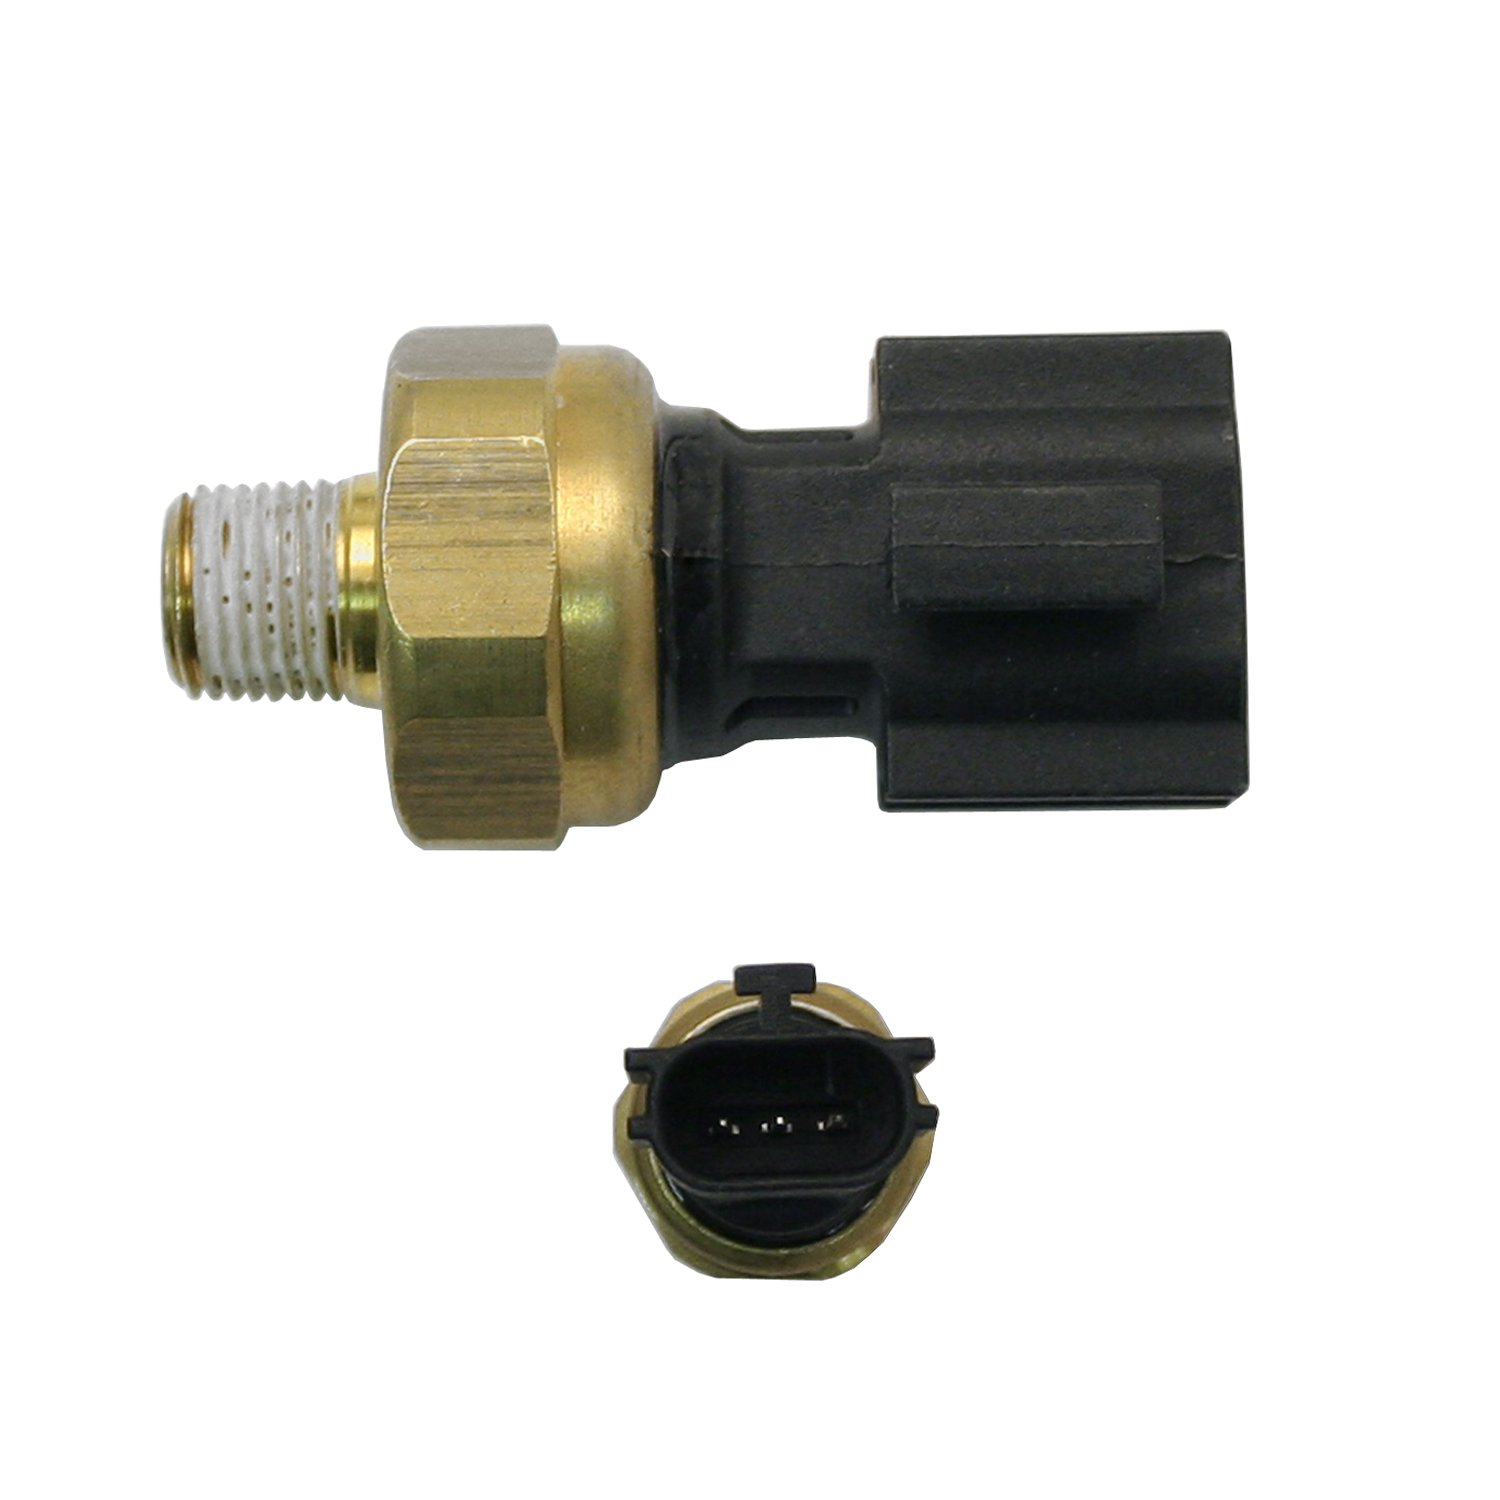 Beck Arnley BECKARNLEY 201-2368 Oil Pressure Switch with Gauge